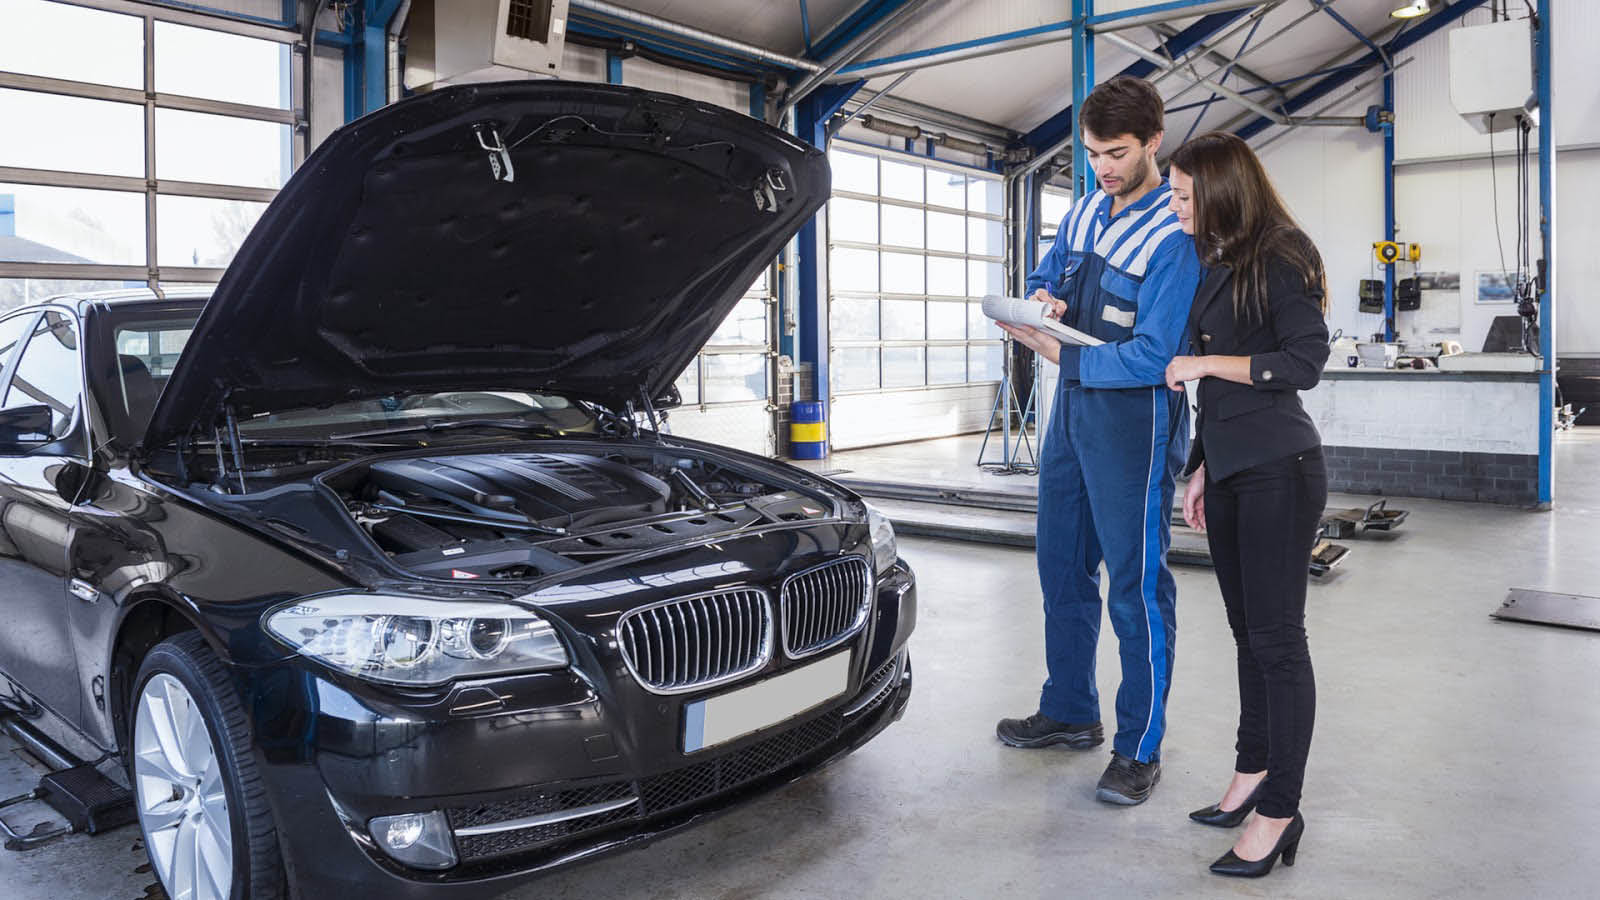 We provide excellent customer service and quality auto collision repair at Seattle Automotive in Seattle, WA